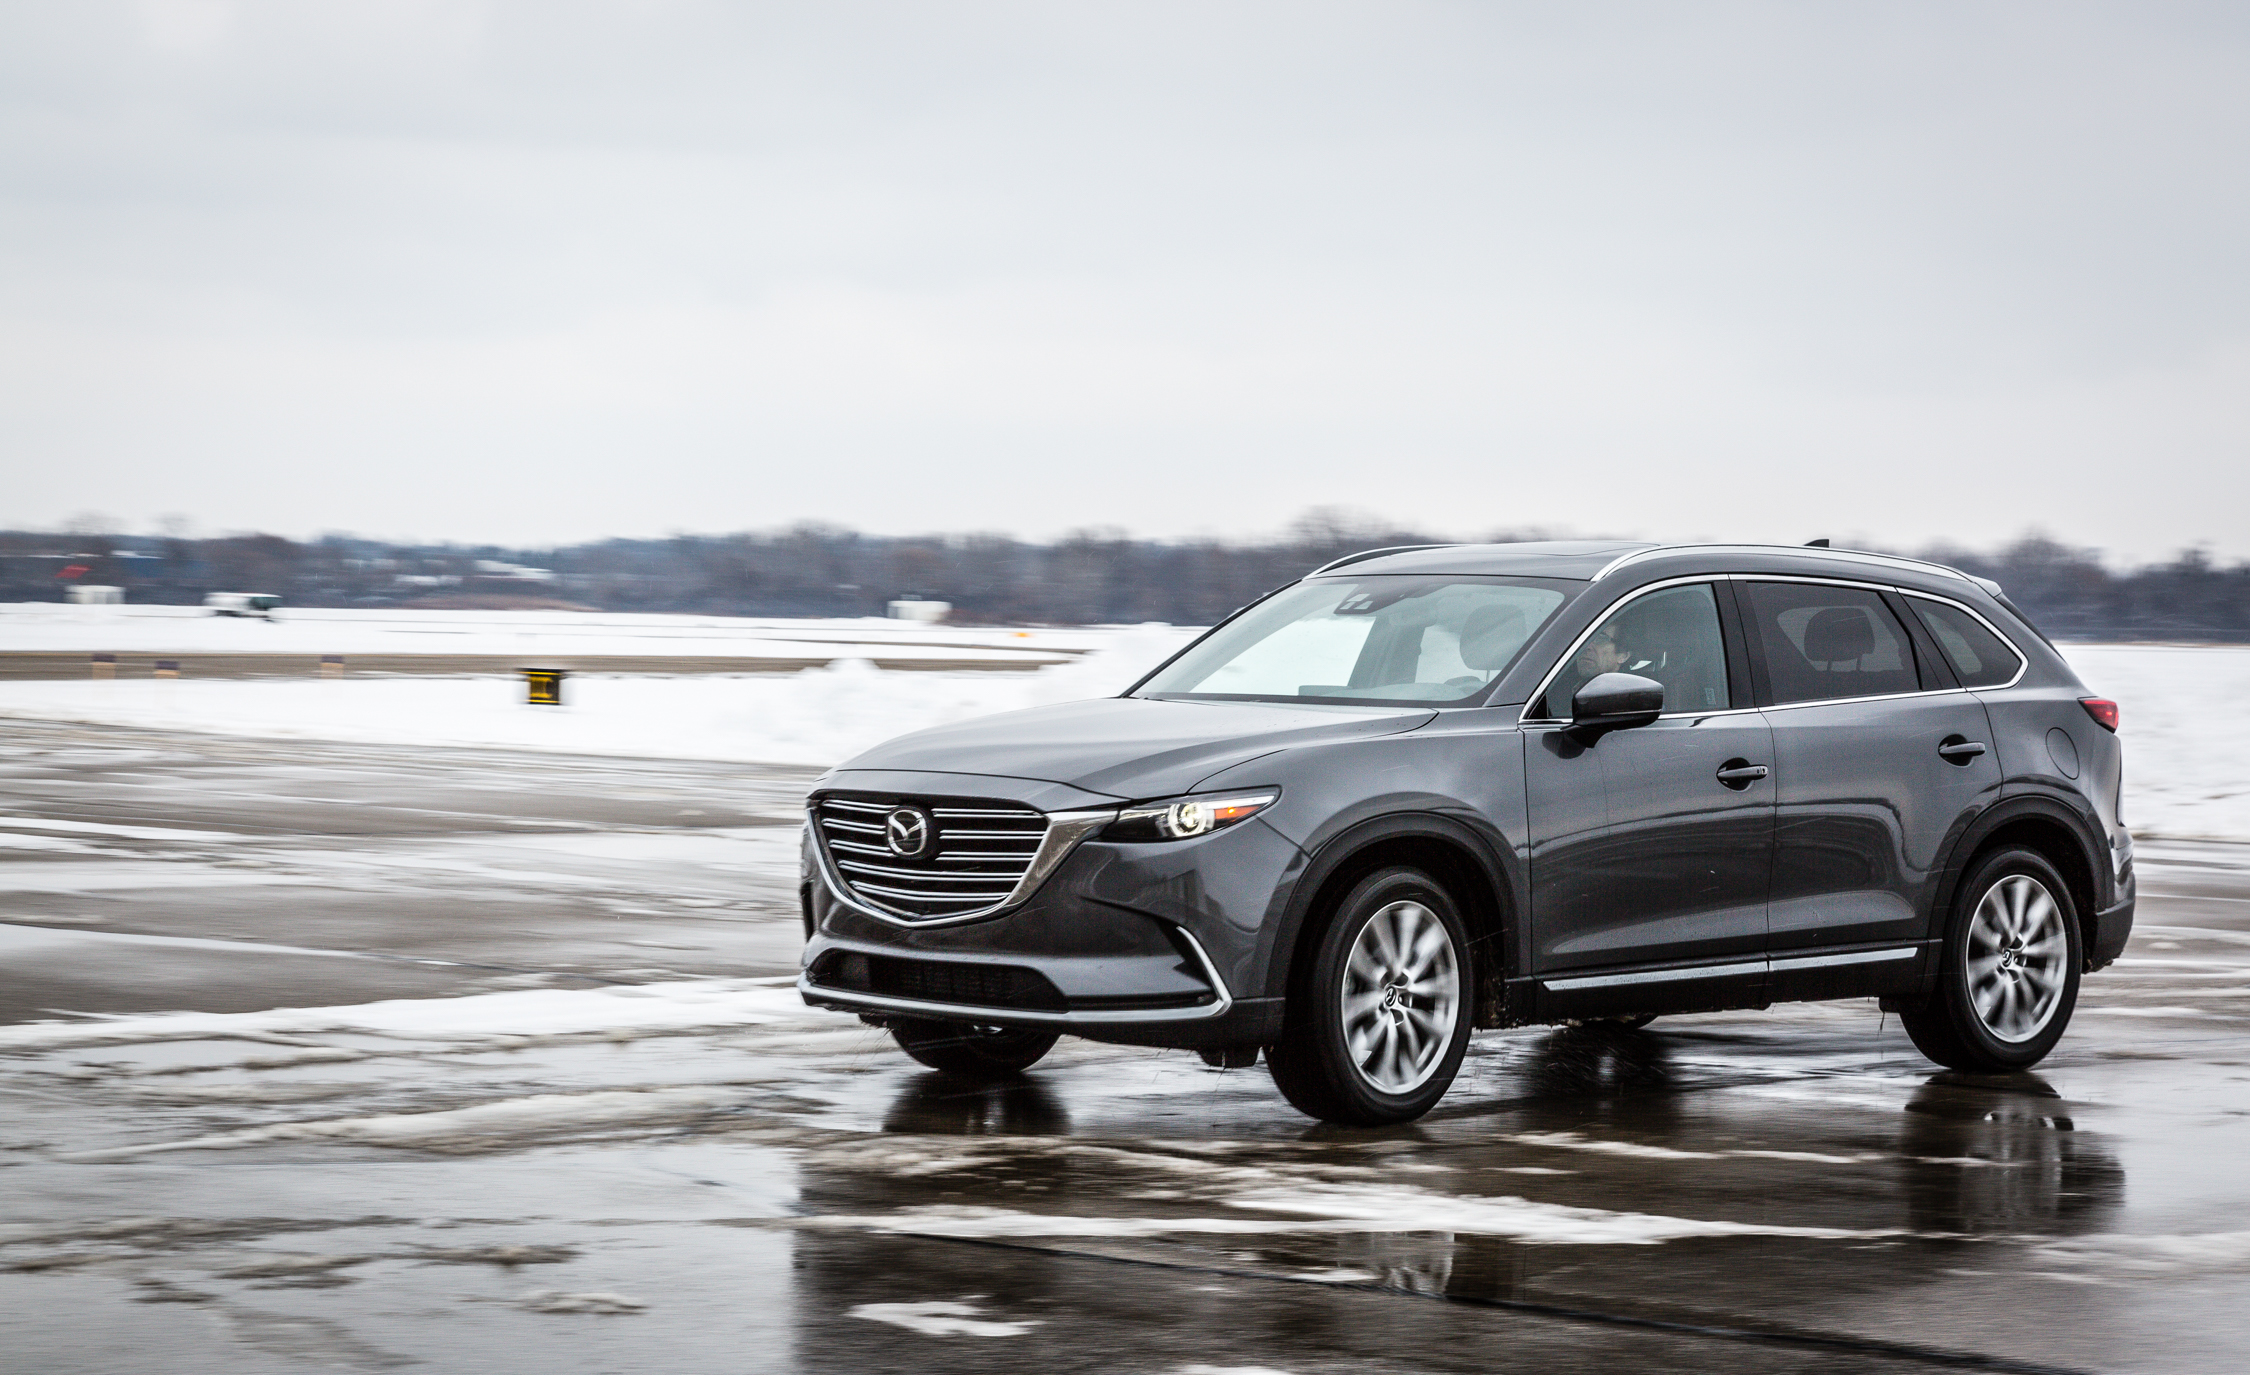 2017 Mazda CX 9 Test Drive Side And Front View (View 4 of 28)